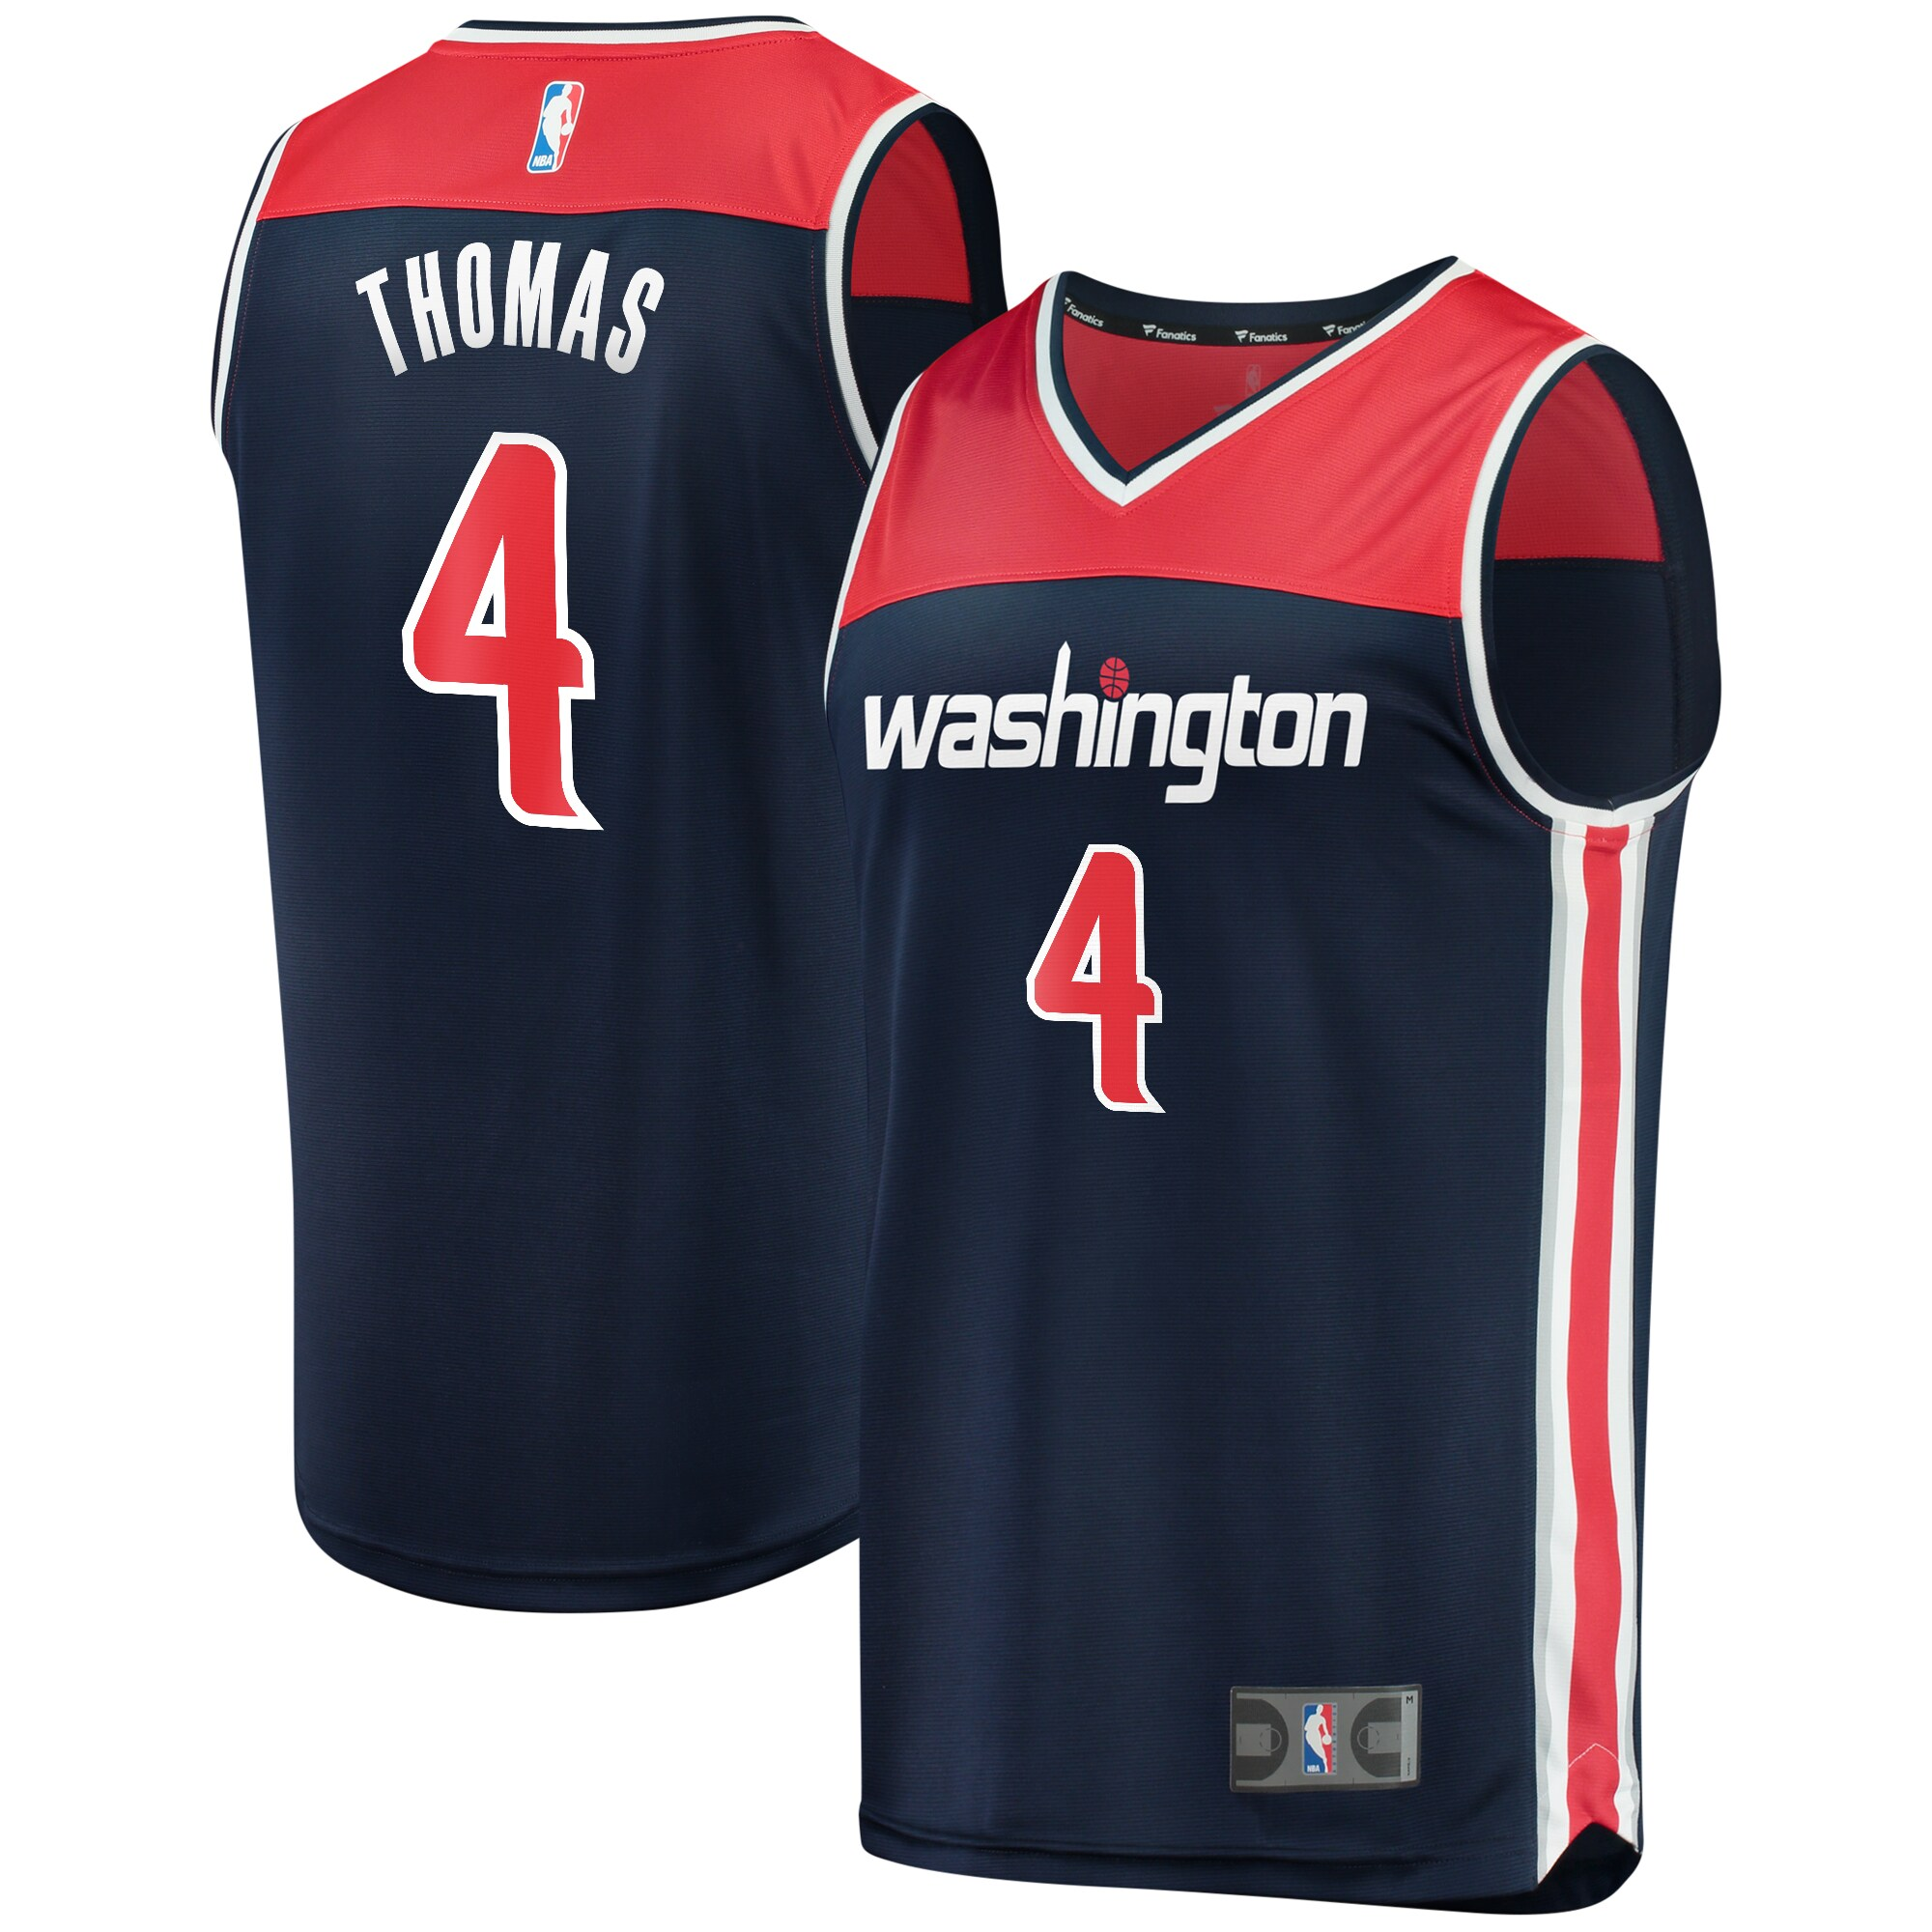 Isaiah Thomas Washington Wizards Fanatics Branded Fast Break Replica Player Jersey Navy - Statement Edition